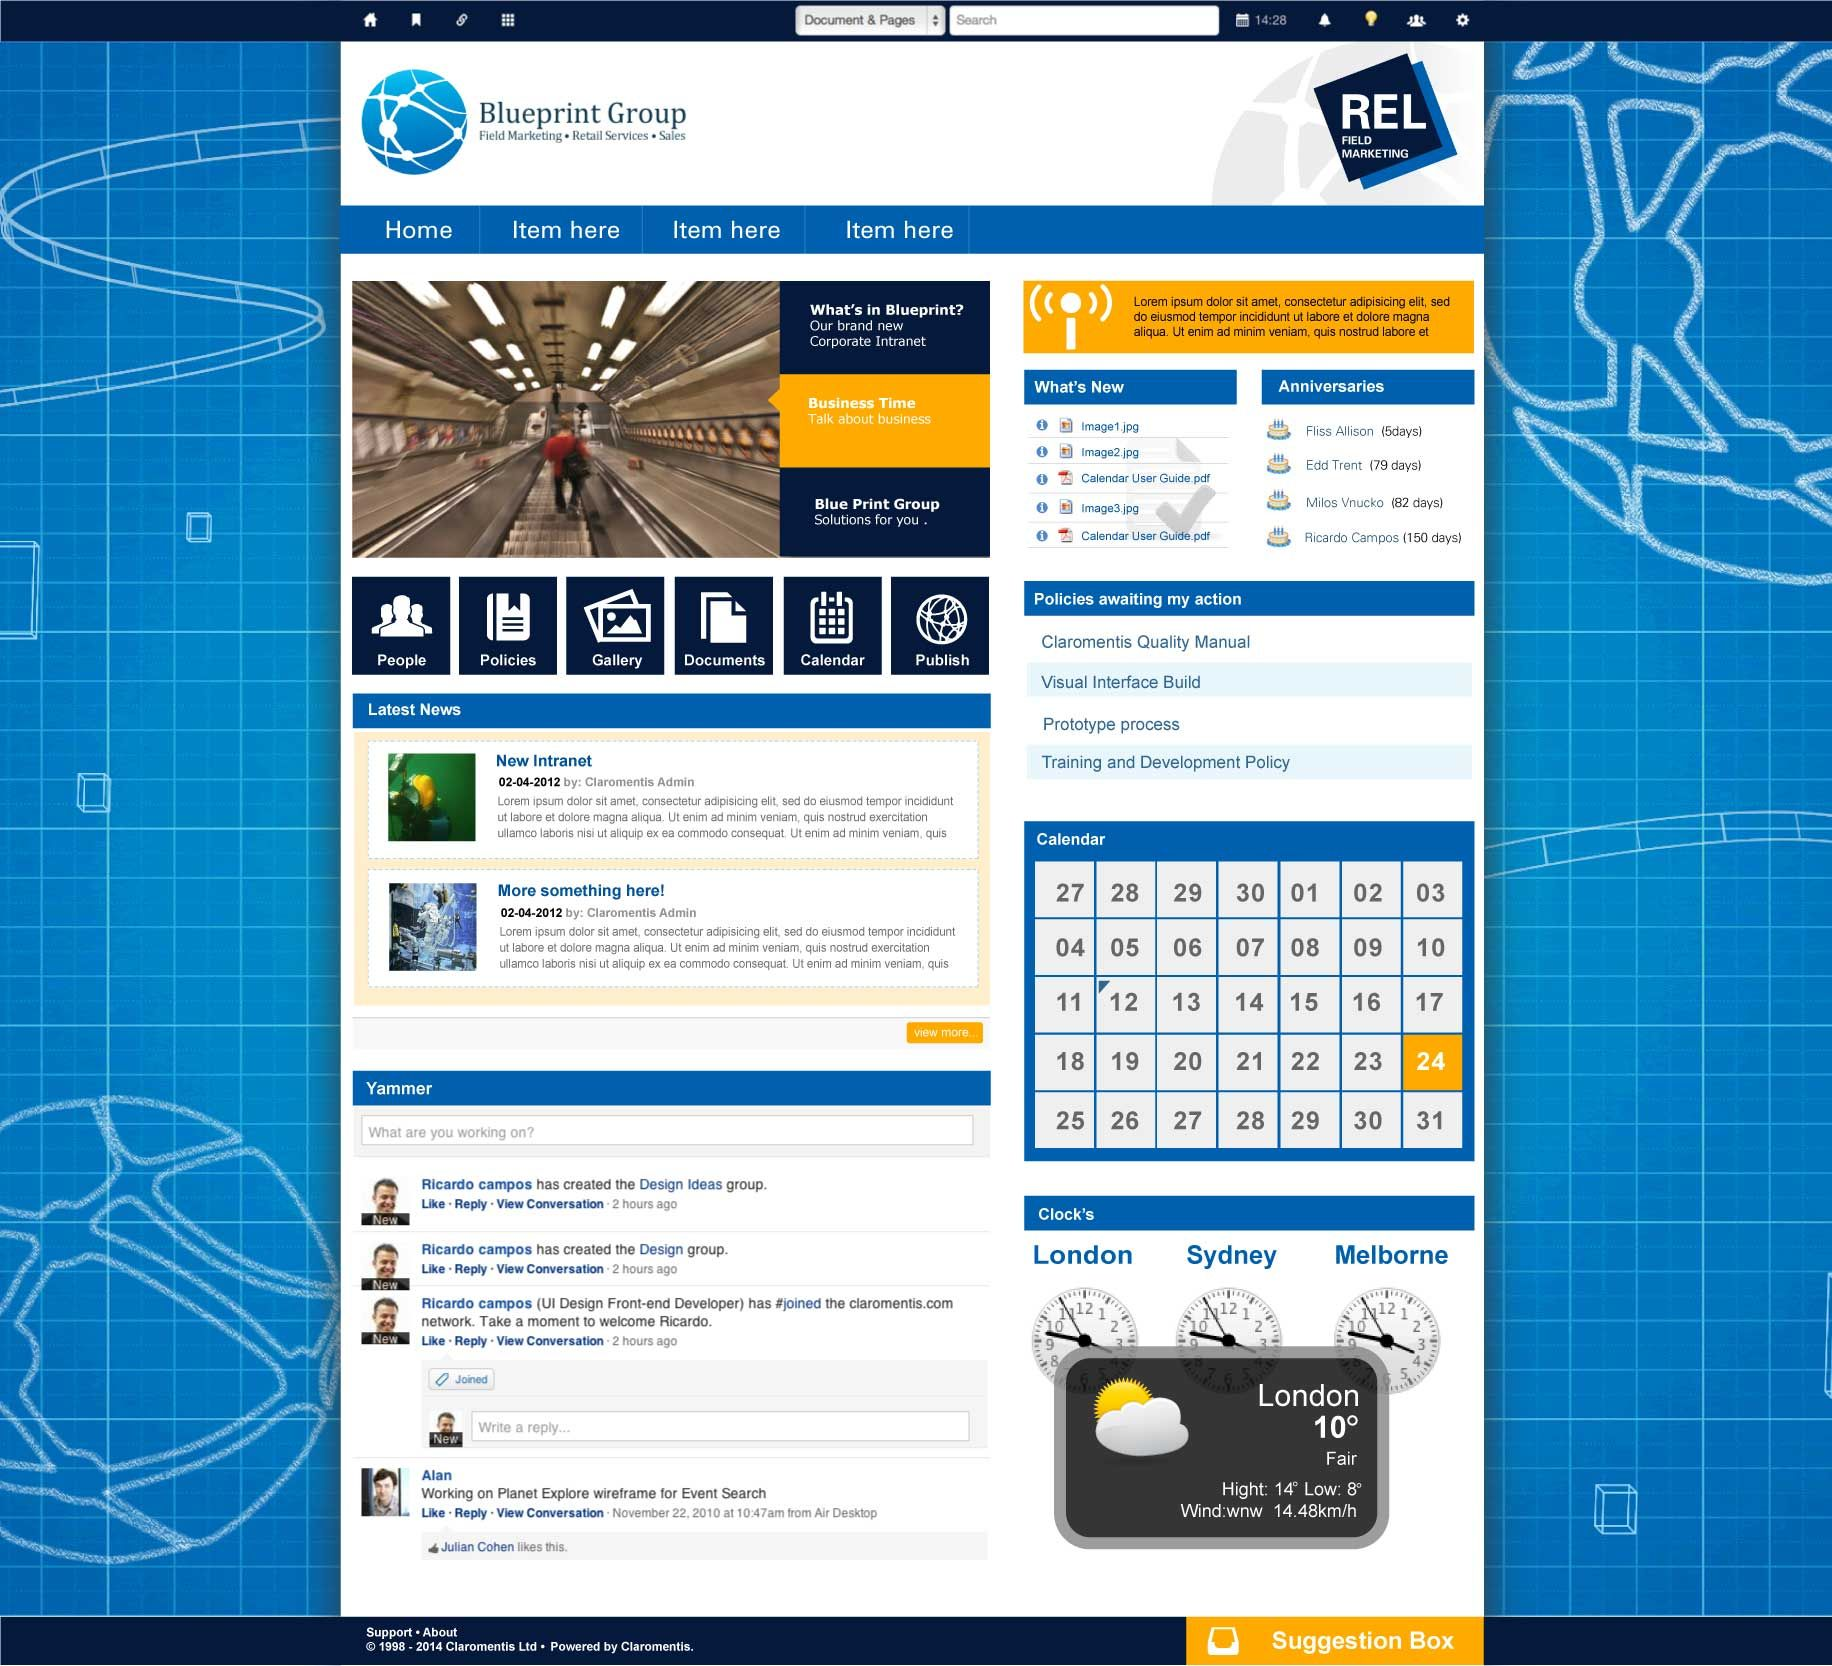 Sharepoint site design ideas - View Our Beautiful Intranets In Our Design Gallery We Ve Collated Our Favourite Designs To Inspire Your Next Intranet View Them Here